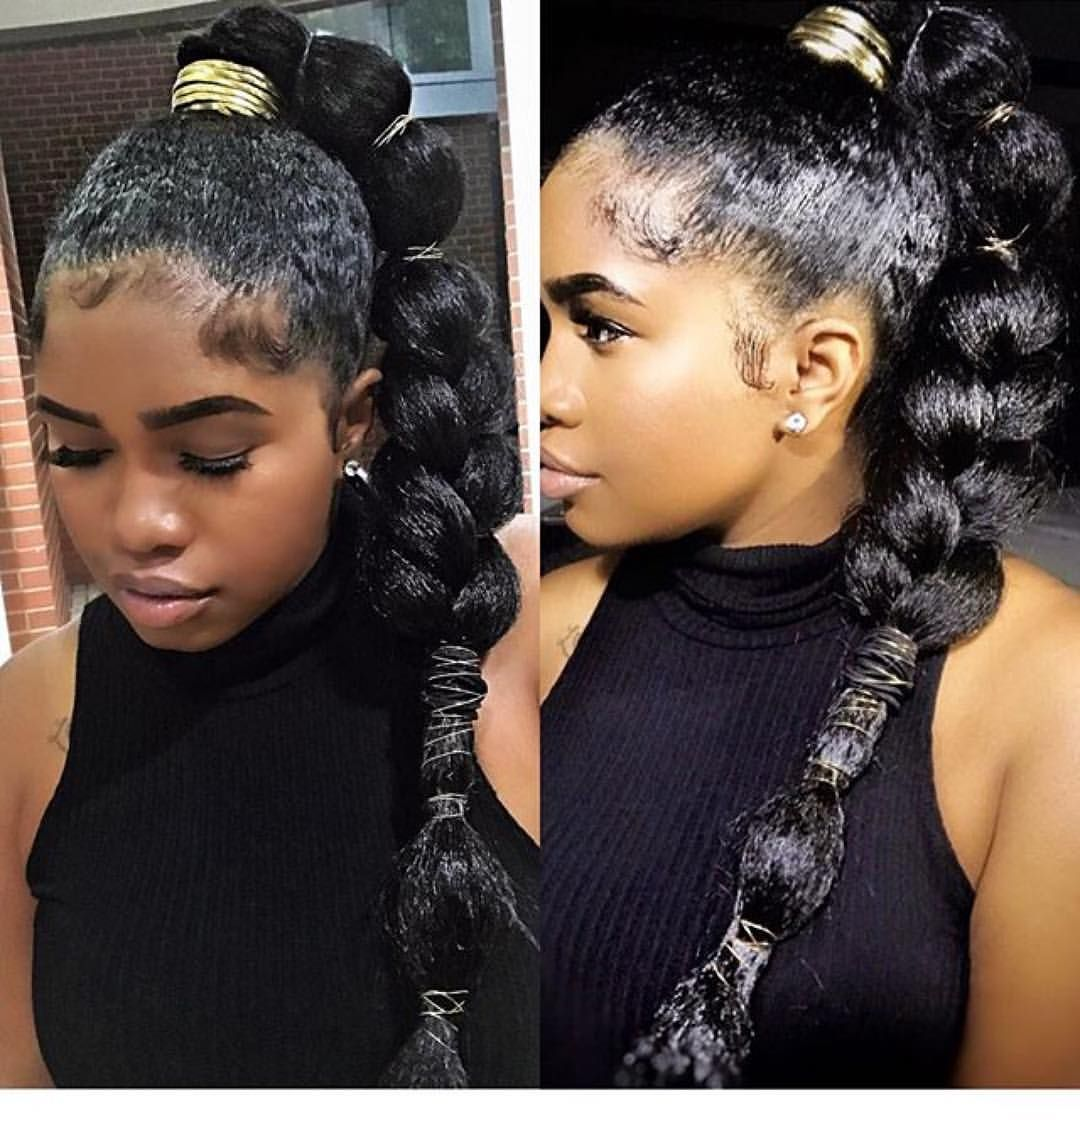 Curlyhairedchik Last Nights Look In Two Different Lightings And Angles I Did A Quick High P High Ponytail Hairstyles Natural Hair Styles Kanekalon Hairstyles